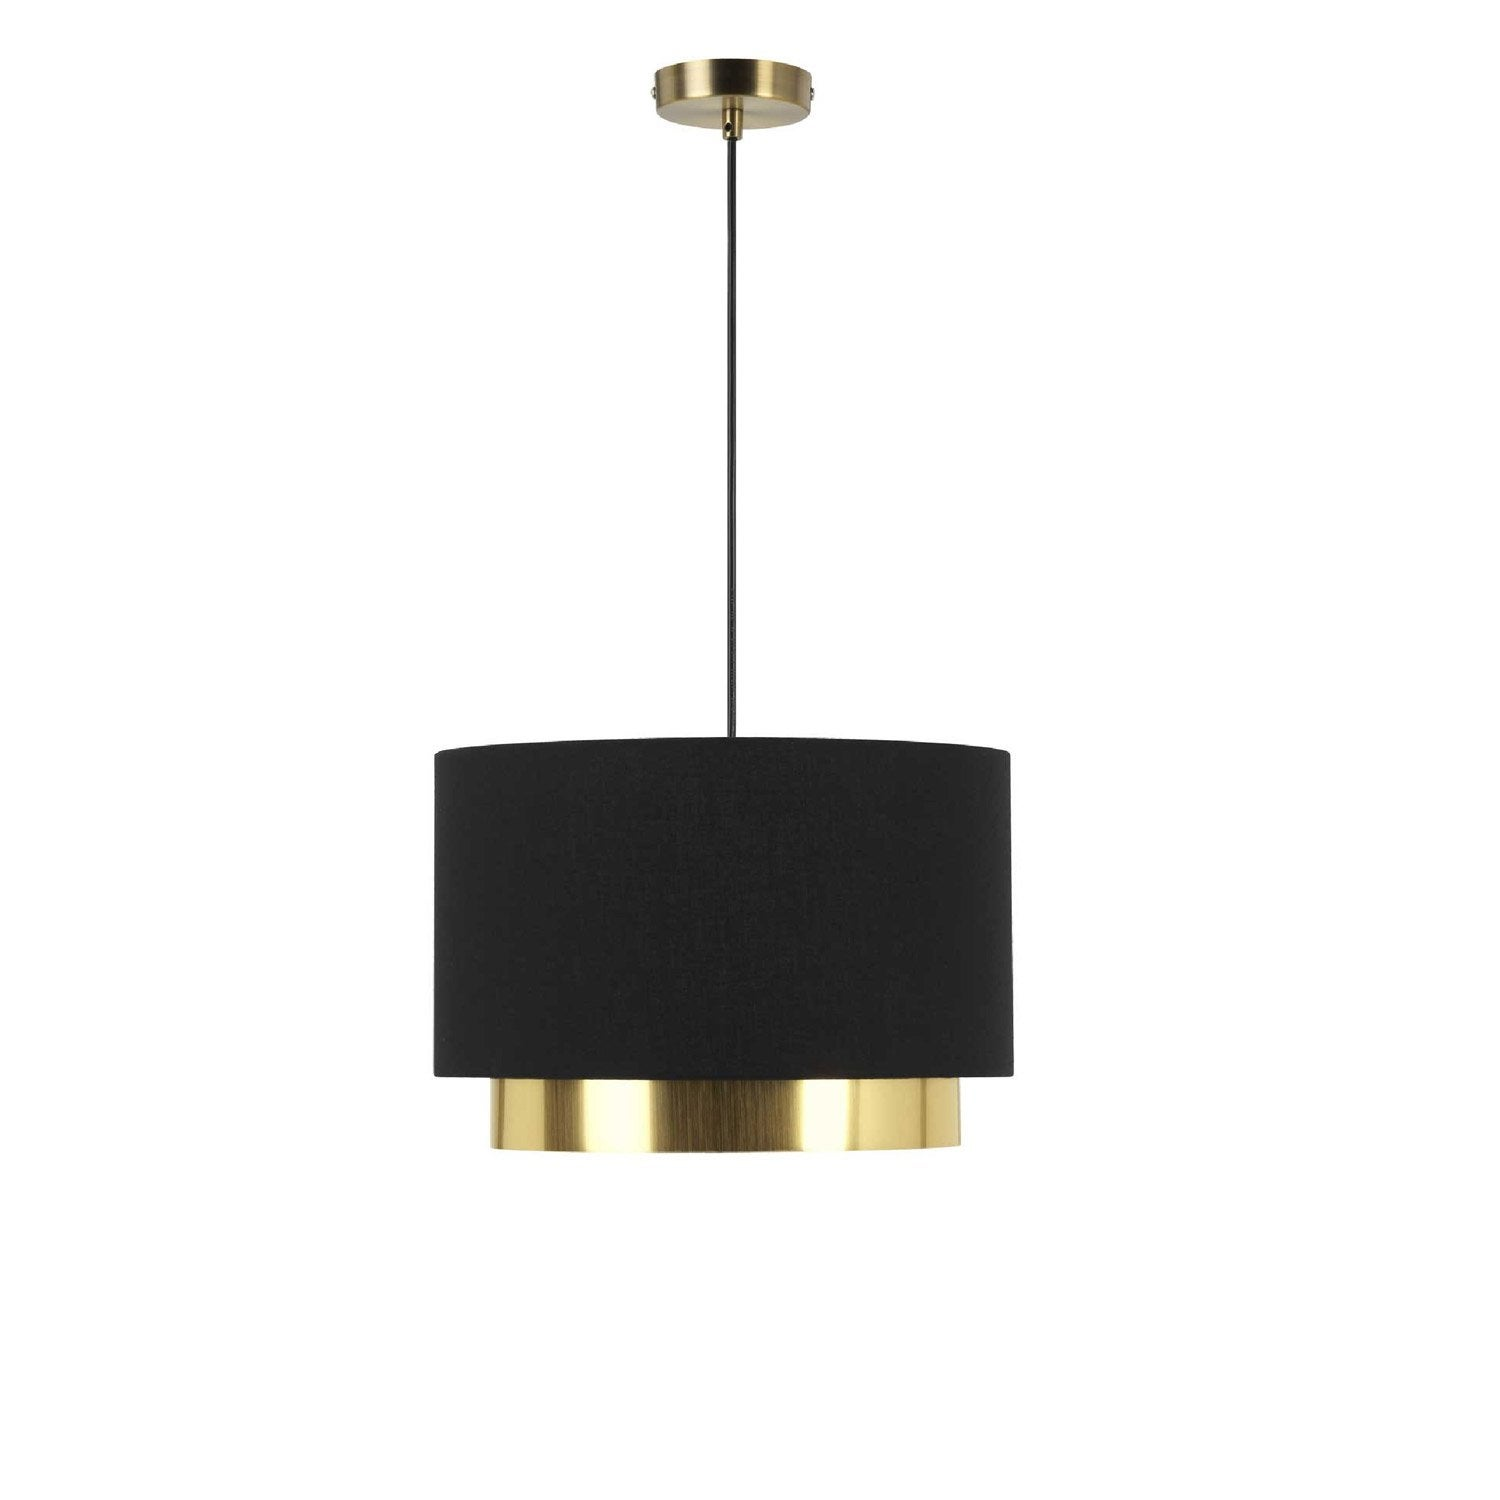 Suspension design dana tissus noir et dor 1 x 23 w mathias leroy merlin - Suspension new york leroy merlin ...